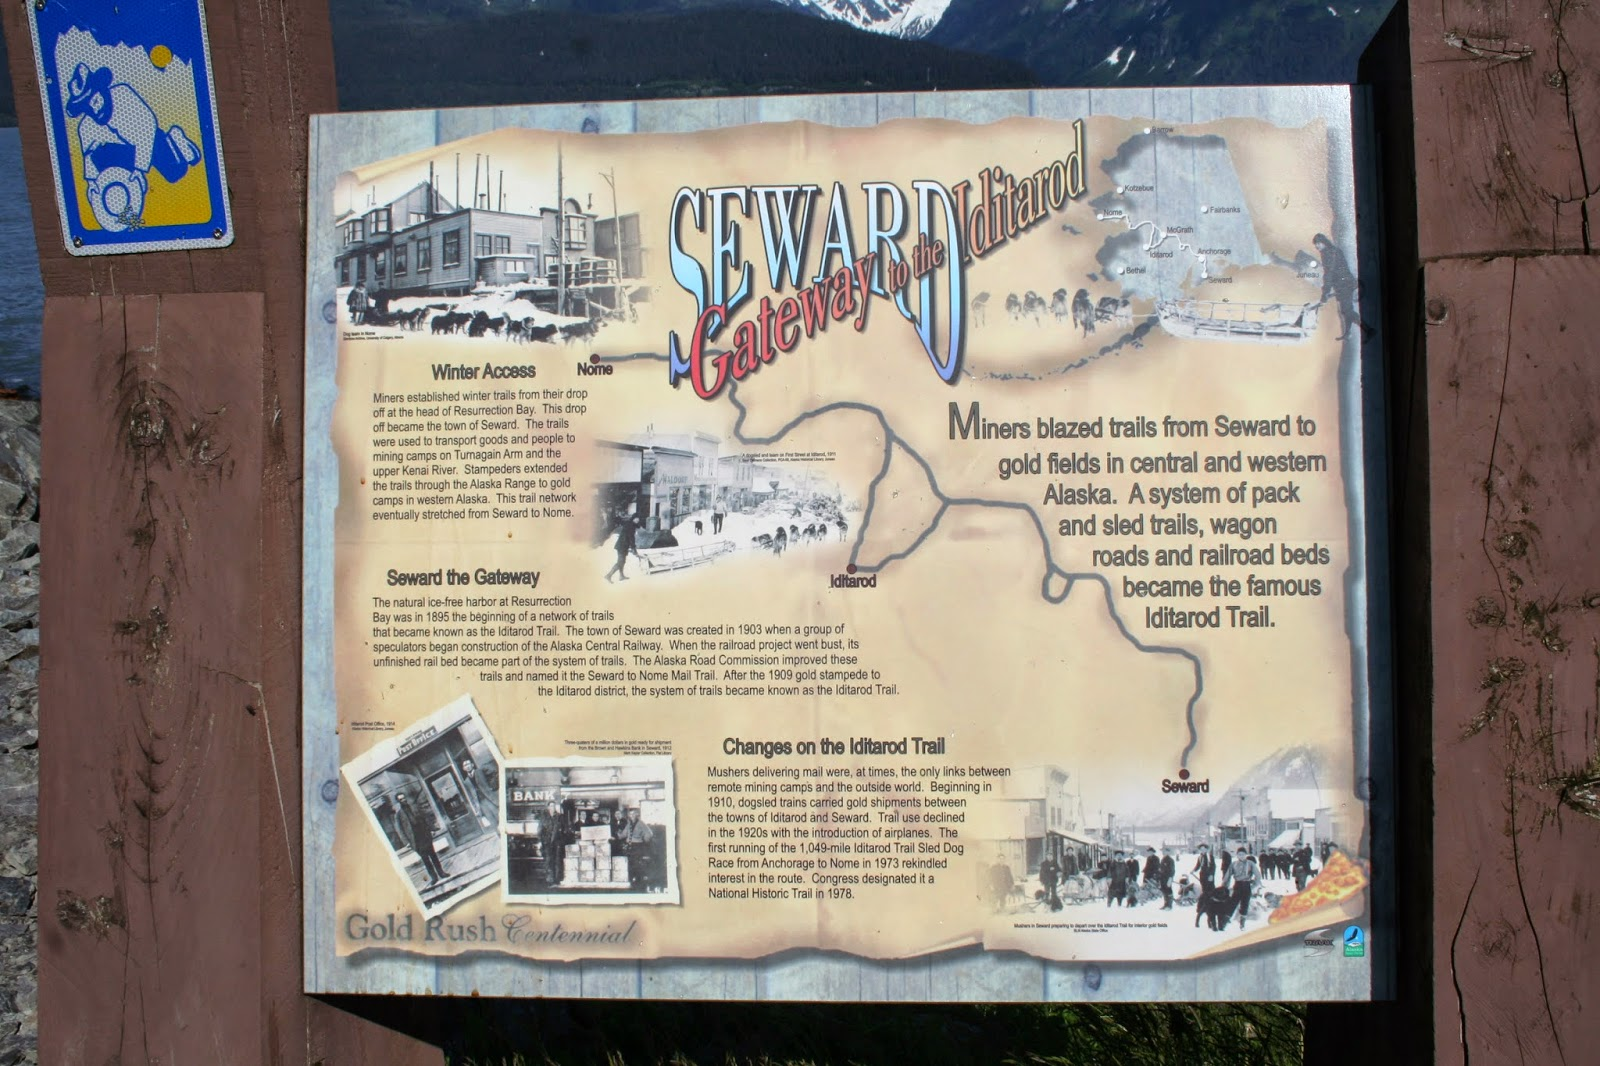 Plaque describing the Iditarod Trail and Seward Alaska's importance.